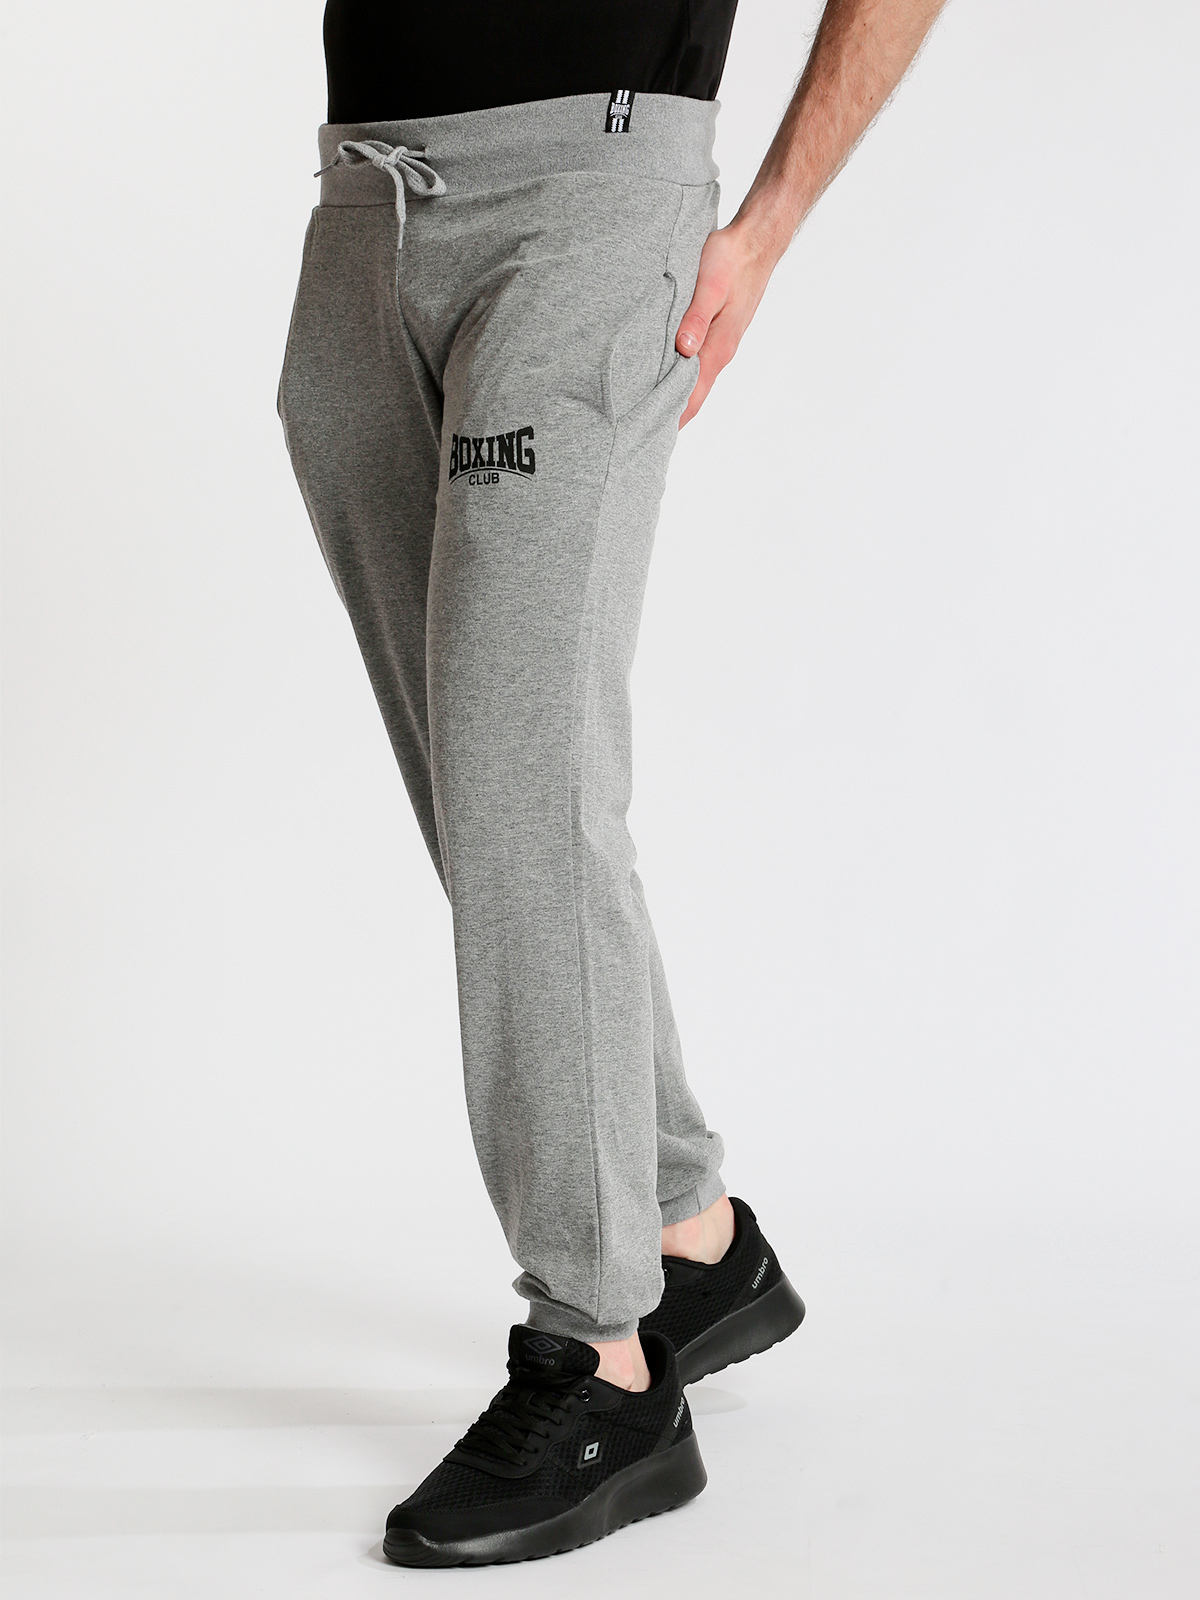 BOXING Sports Pants With Cuffs